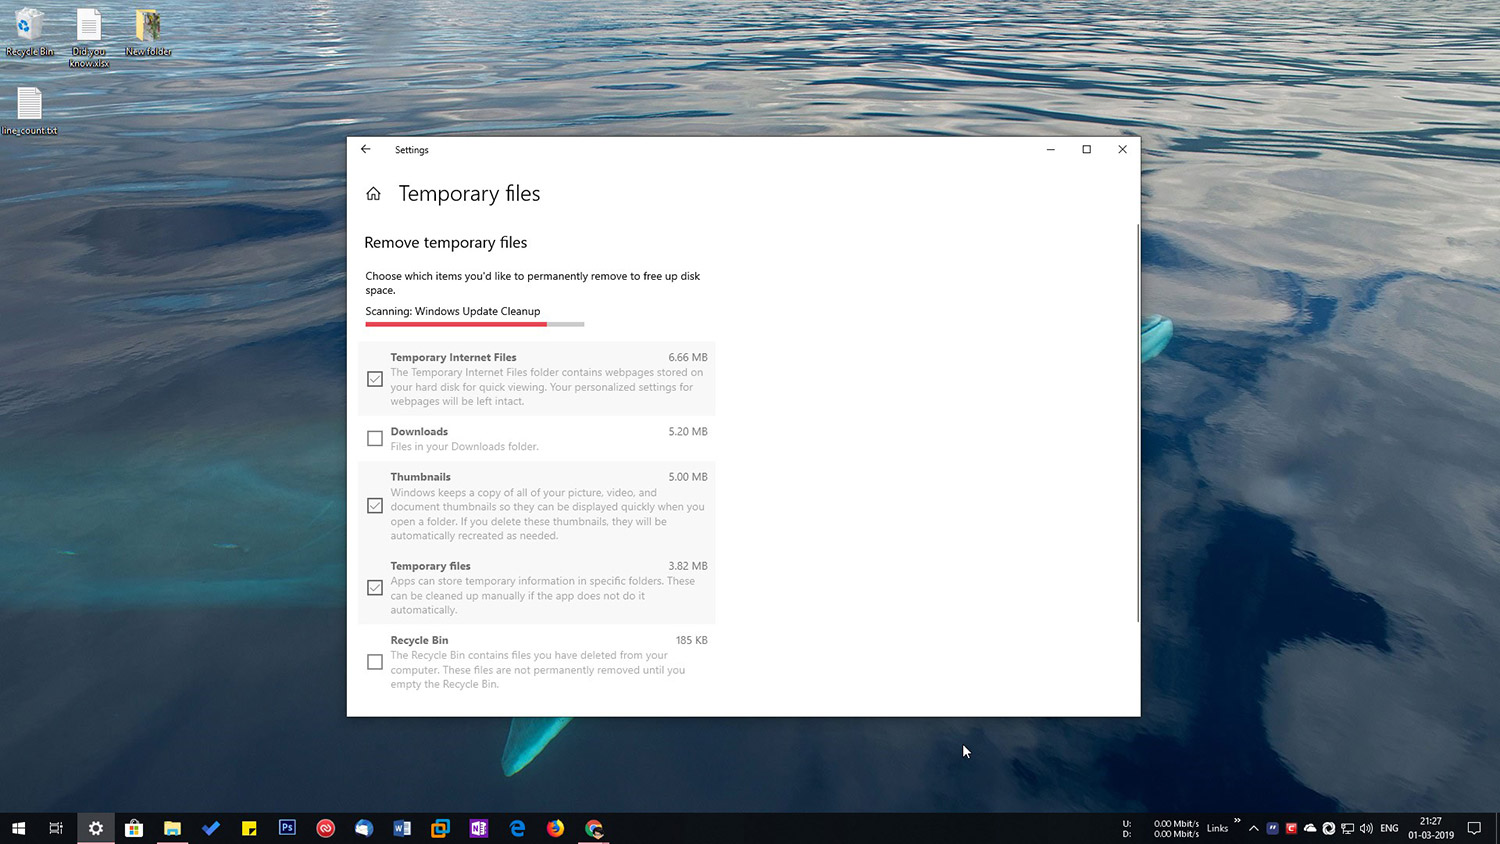 How to Delete Temporary Files in Windows 10 (clear temp files)